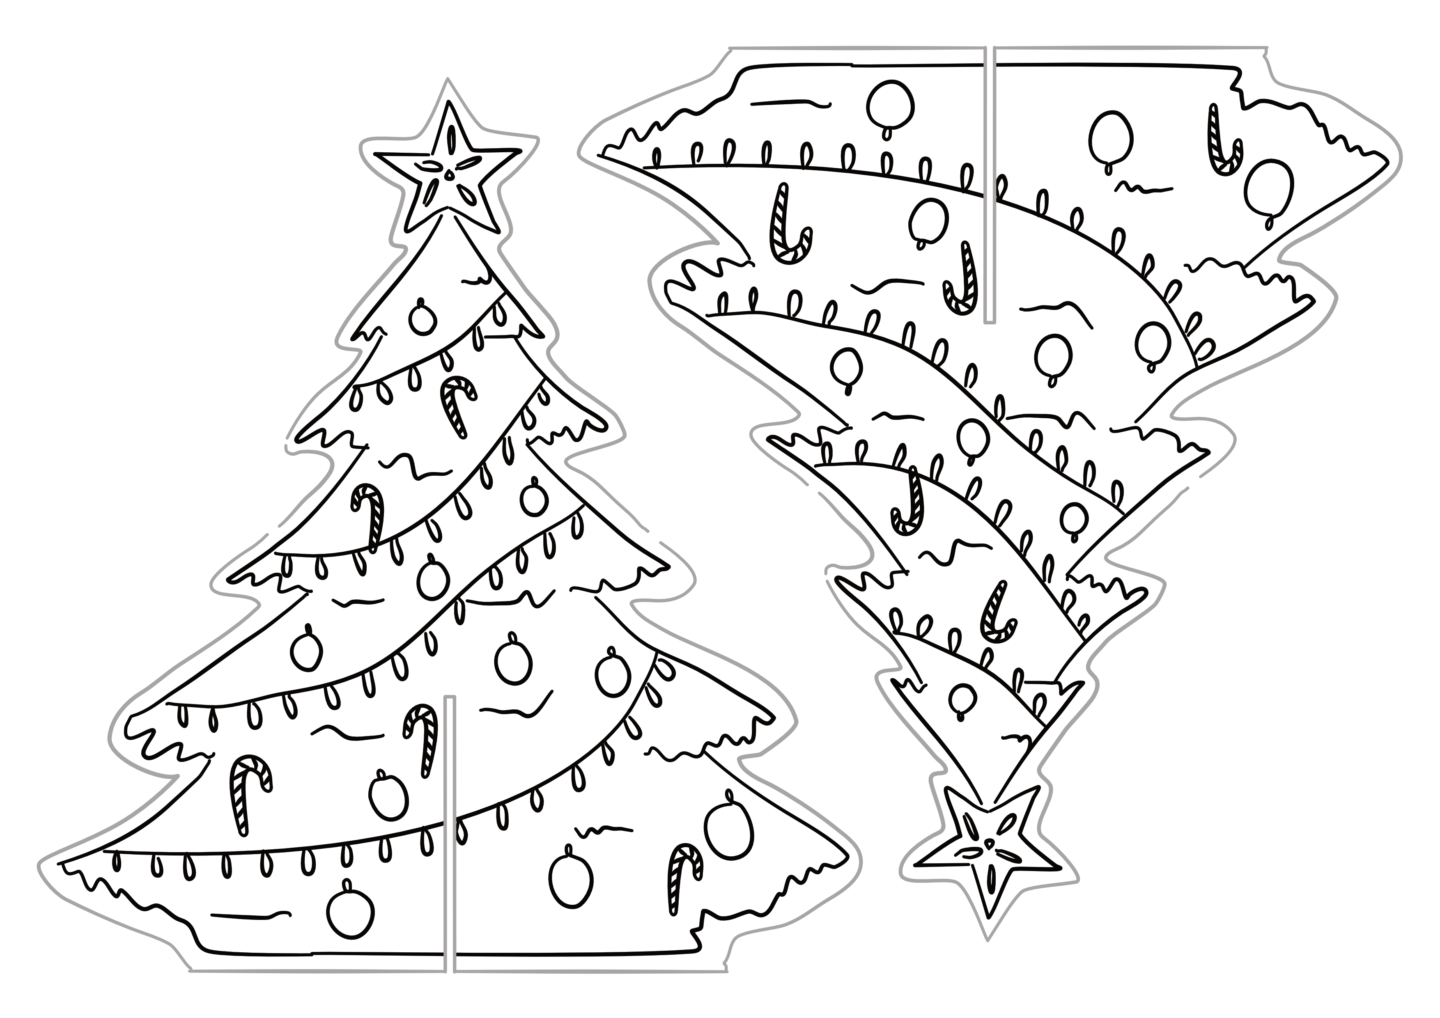 the tree is blank for you to colour in however you like in case you want to create your own design or just need an excuse to sit and colour in - Printable Christmas Trees